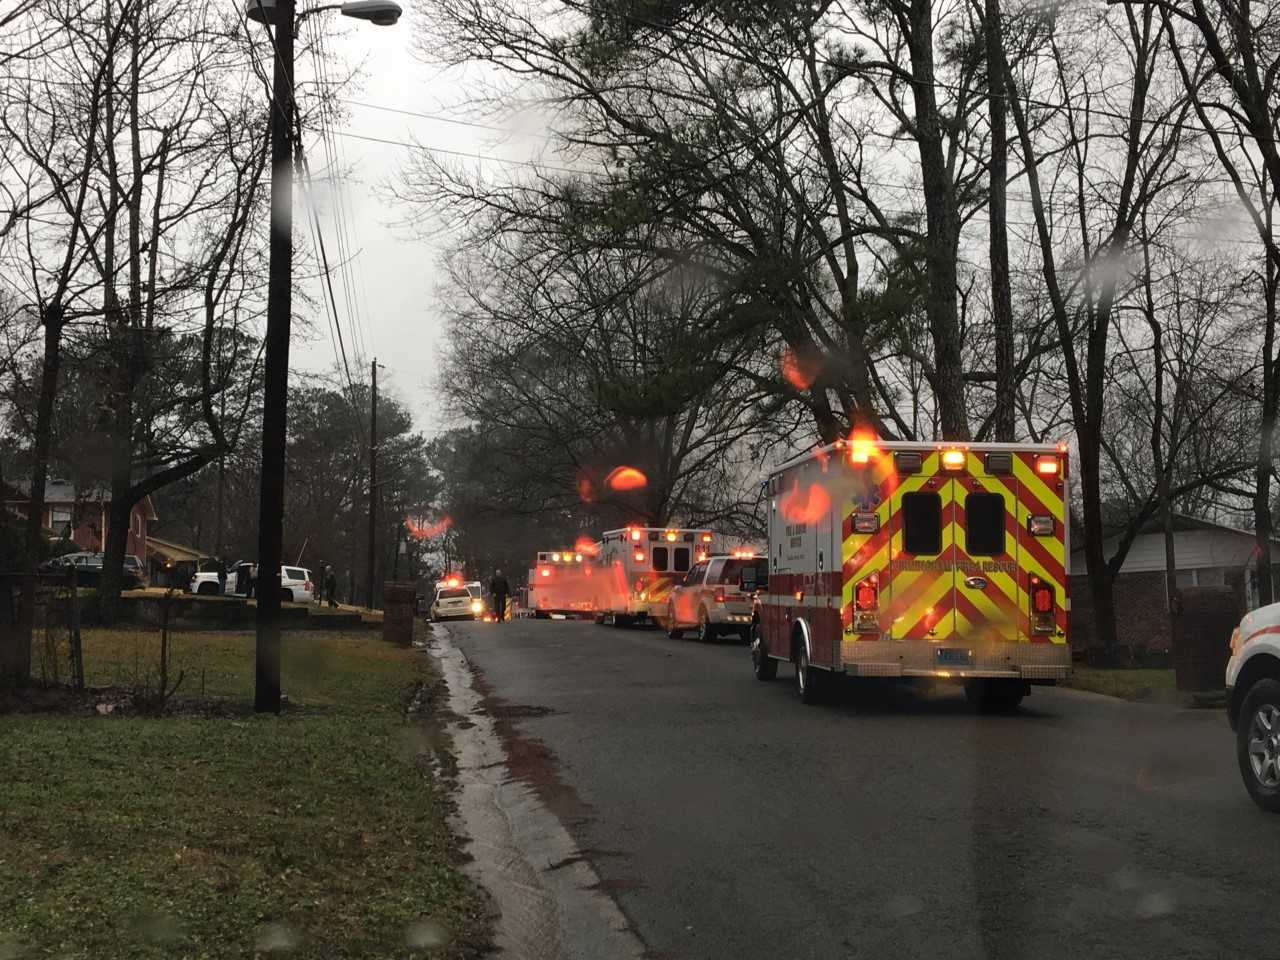 <p>Center Point Fire &amp;amp; Rescue with assistance from Birmingham Fire &amp;amp; Rescue are battling a structure fire in the area of Kim Drive and Polly Reed Road in Center Point.</p>